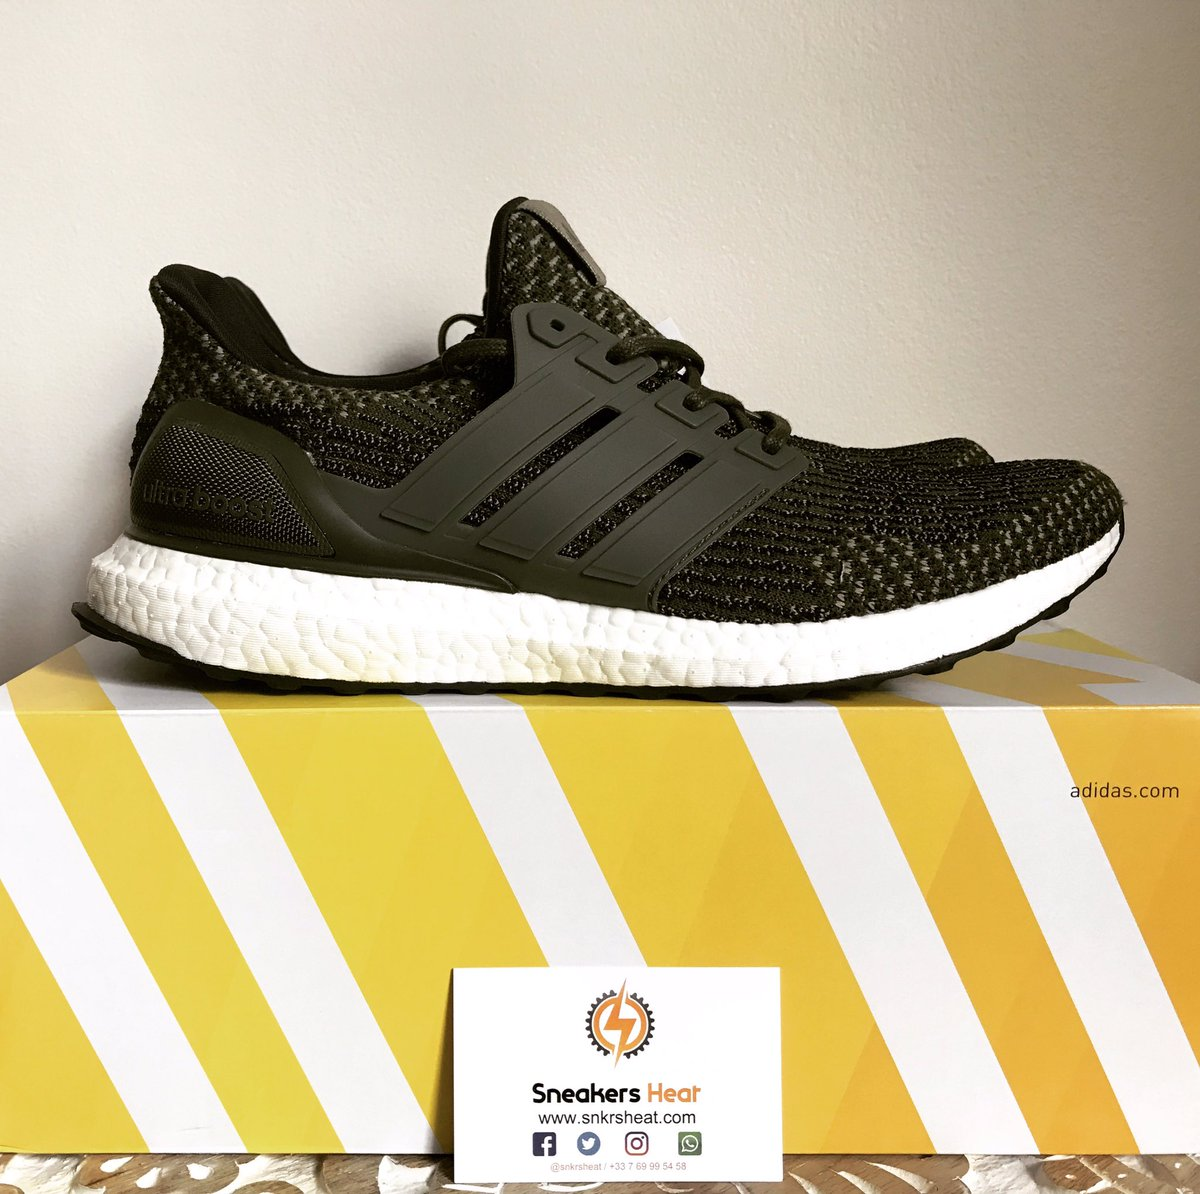 Adidas Ultra Boost 3.0 MultiColor LTD (#1132332) from Lodewijk at